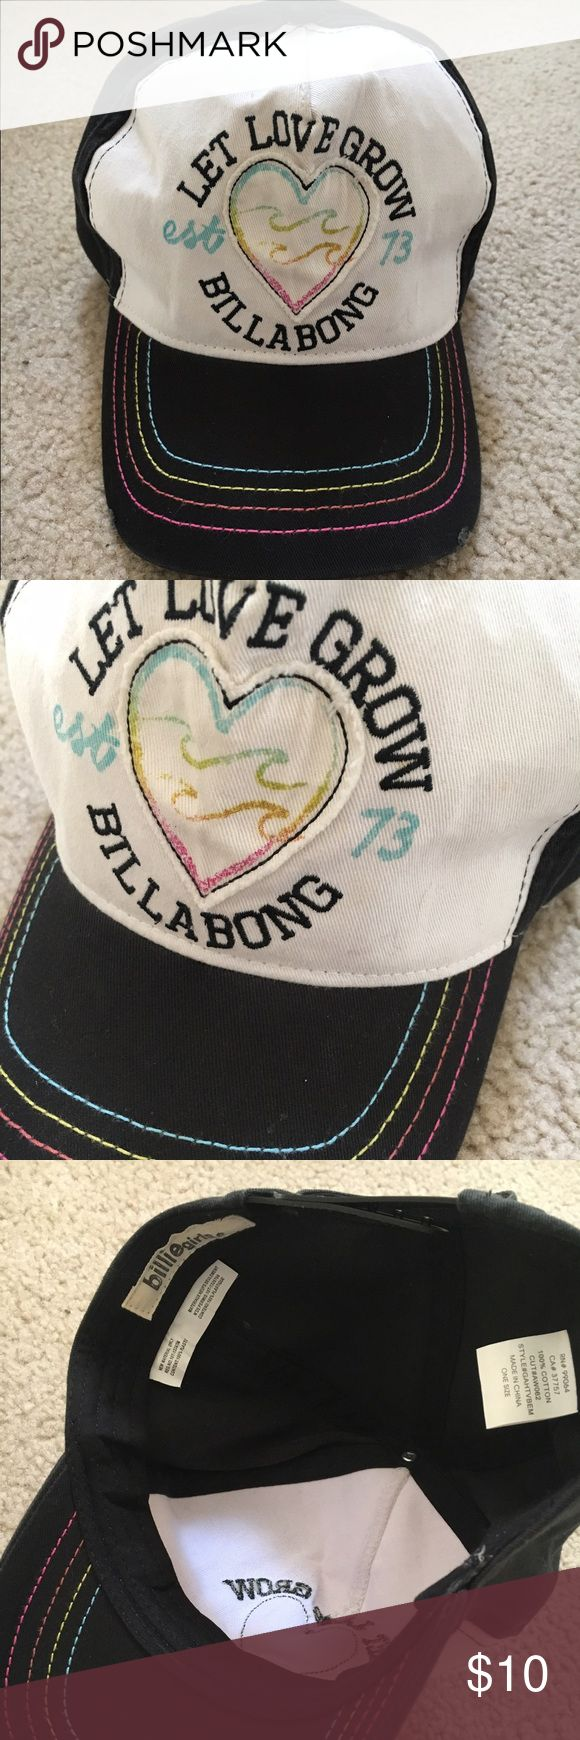 Billabong Girls Baseball Hat Like new, maybe worn twice, hat by Billabong( Billie girls ). Black color hat with adjustable back snap closure. Billabong Accessories Hats